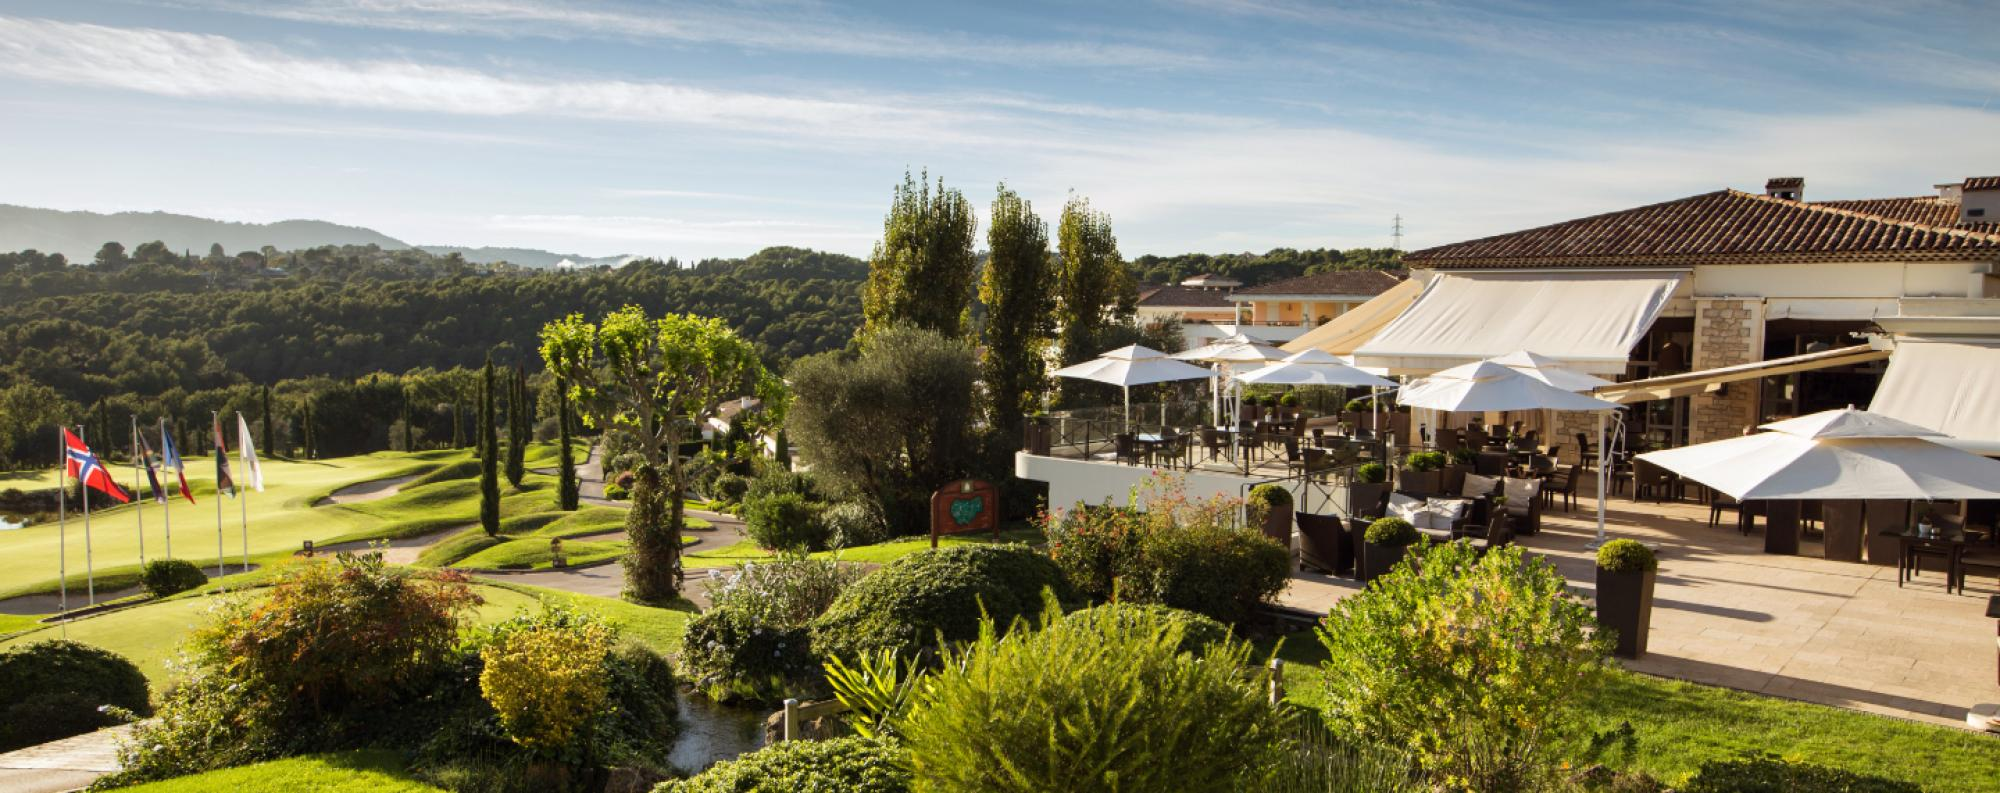 Royal Mougins Golf Club has got lots of the most popular golf course near South of France